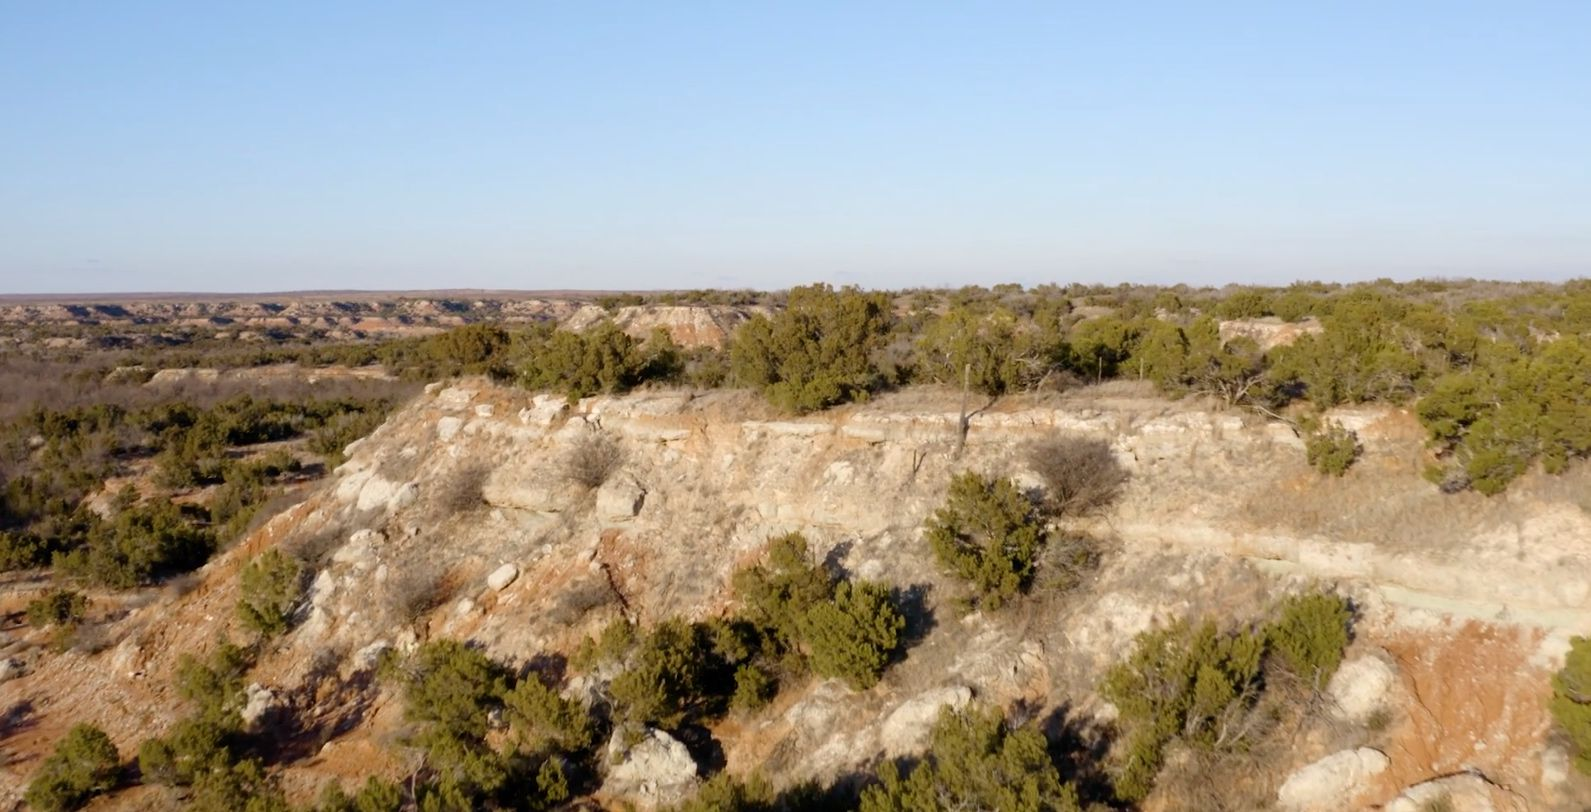 The Caloosa Ranch stretches across 14,500 acres in Stonewall County northwest of Fort Worth.